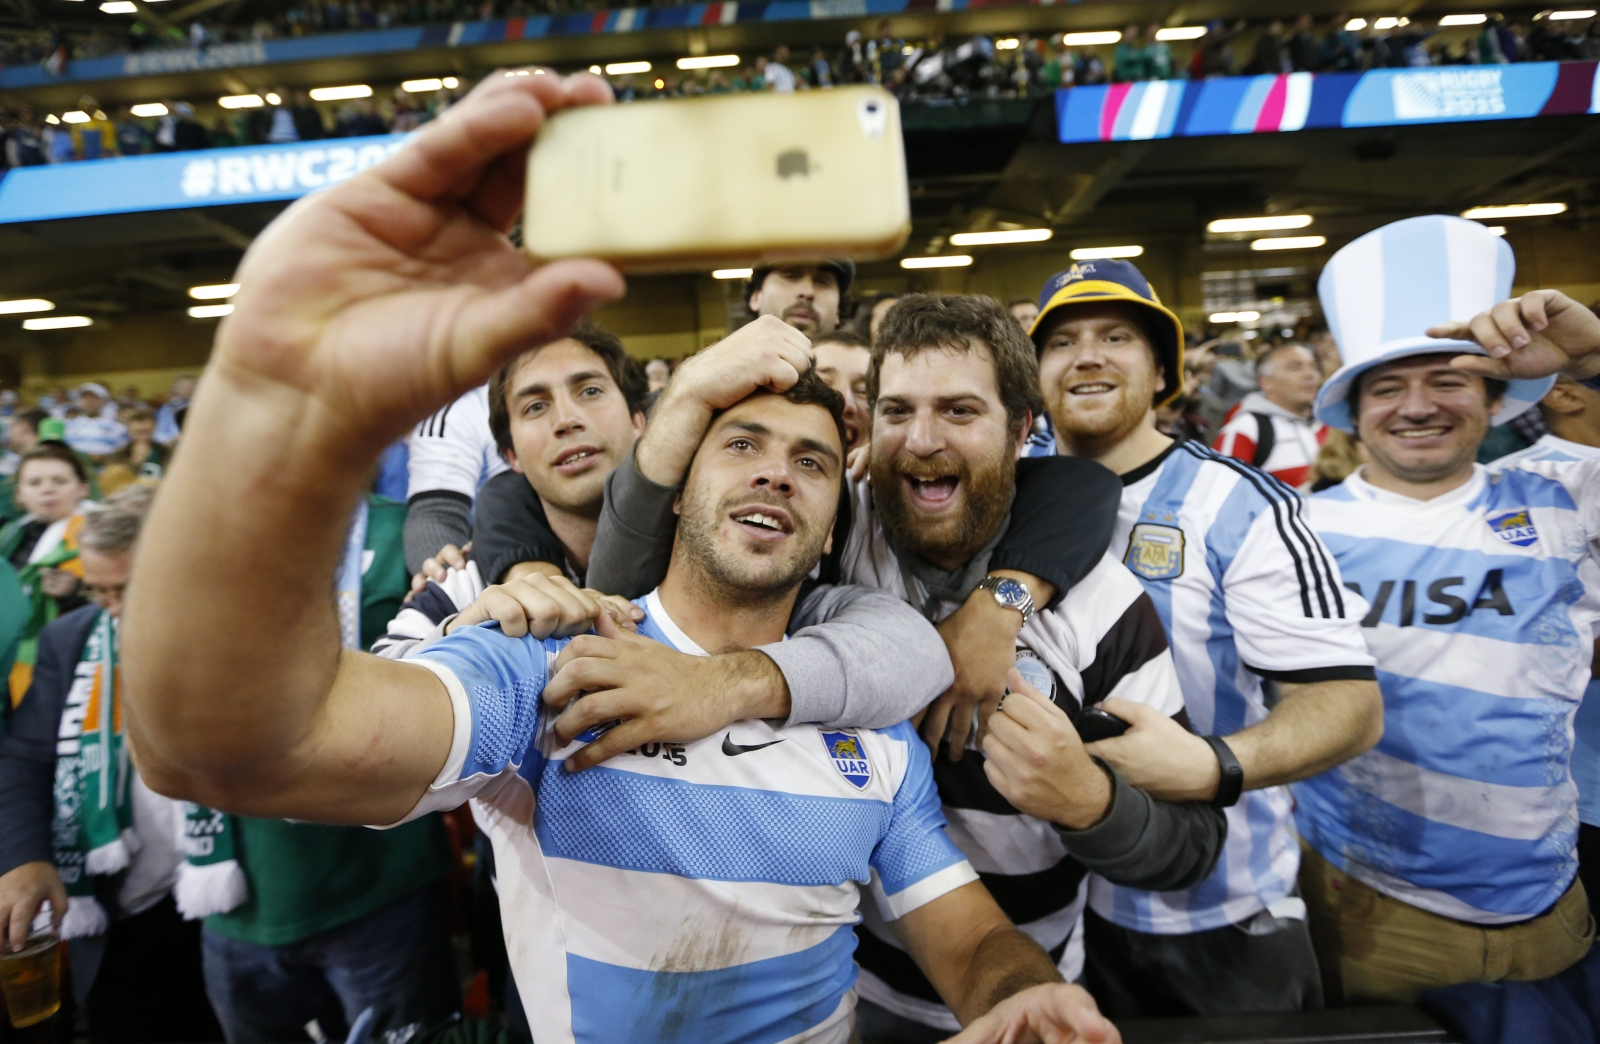 Argentine rugby player poses with fans